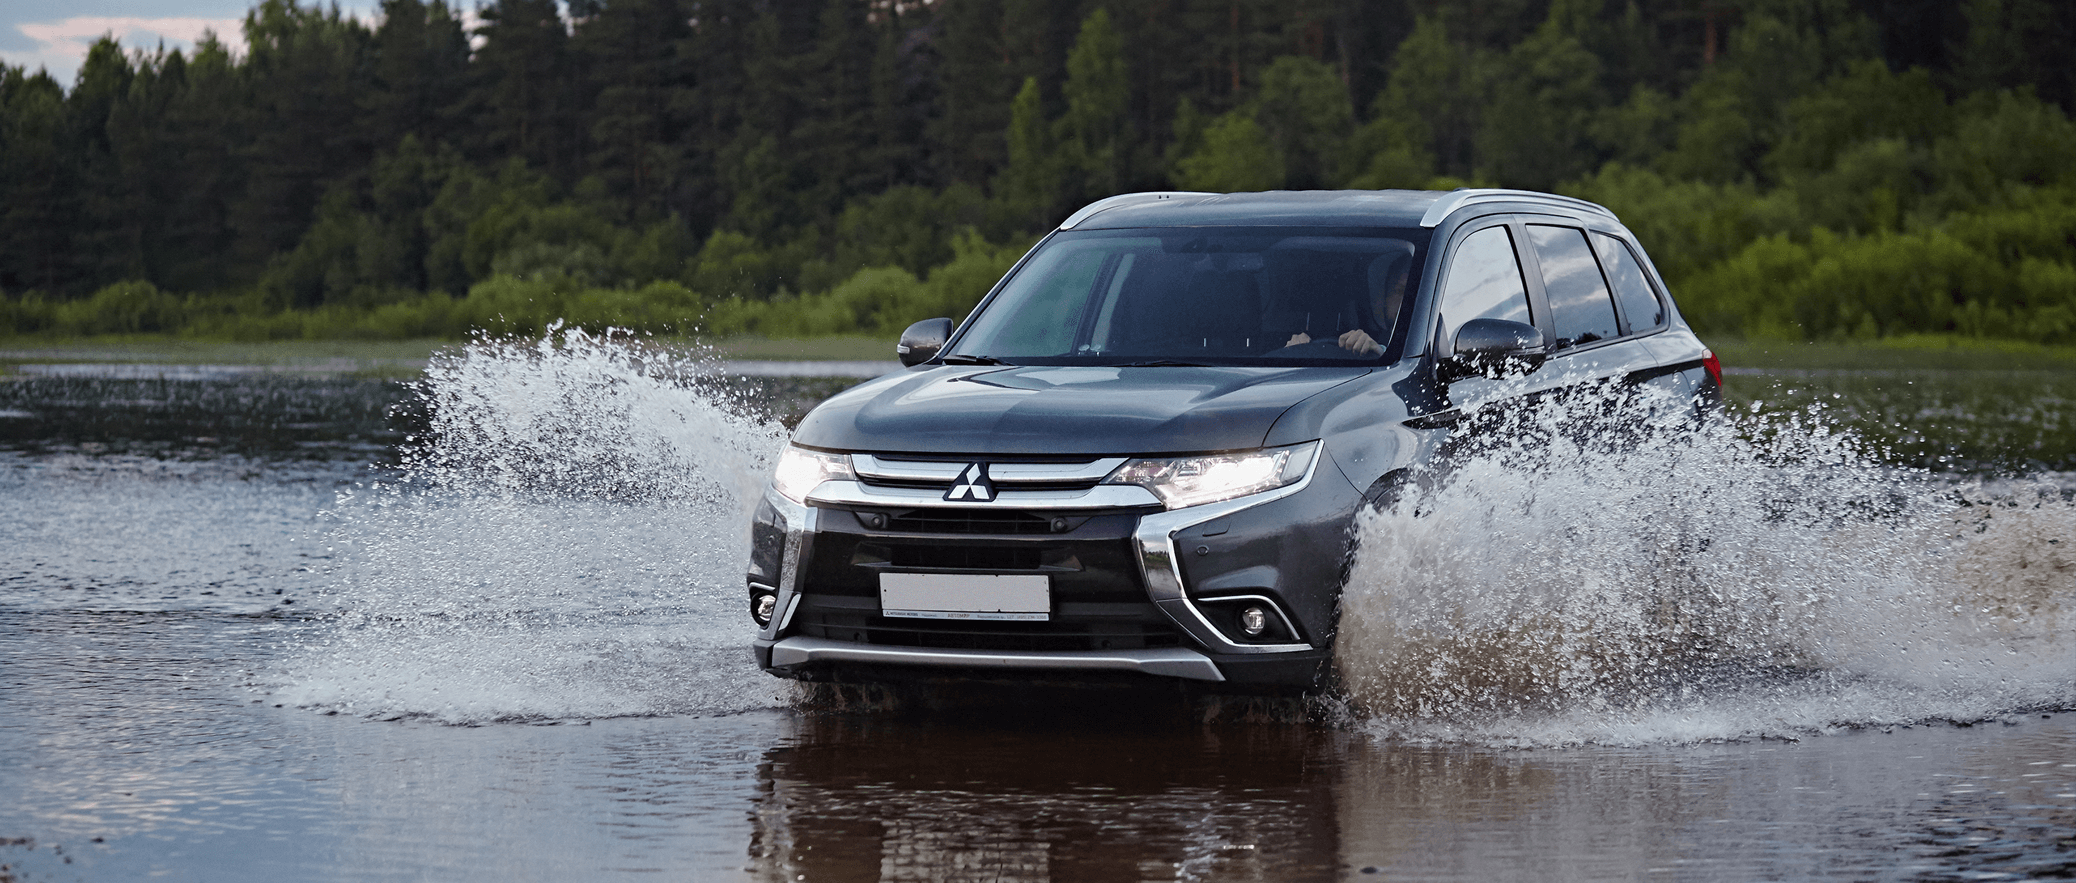 New Mitsubishi in Skipton, North Yorkshire - Midgley Motor Cars